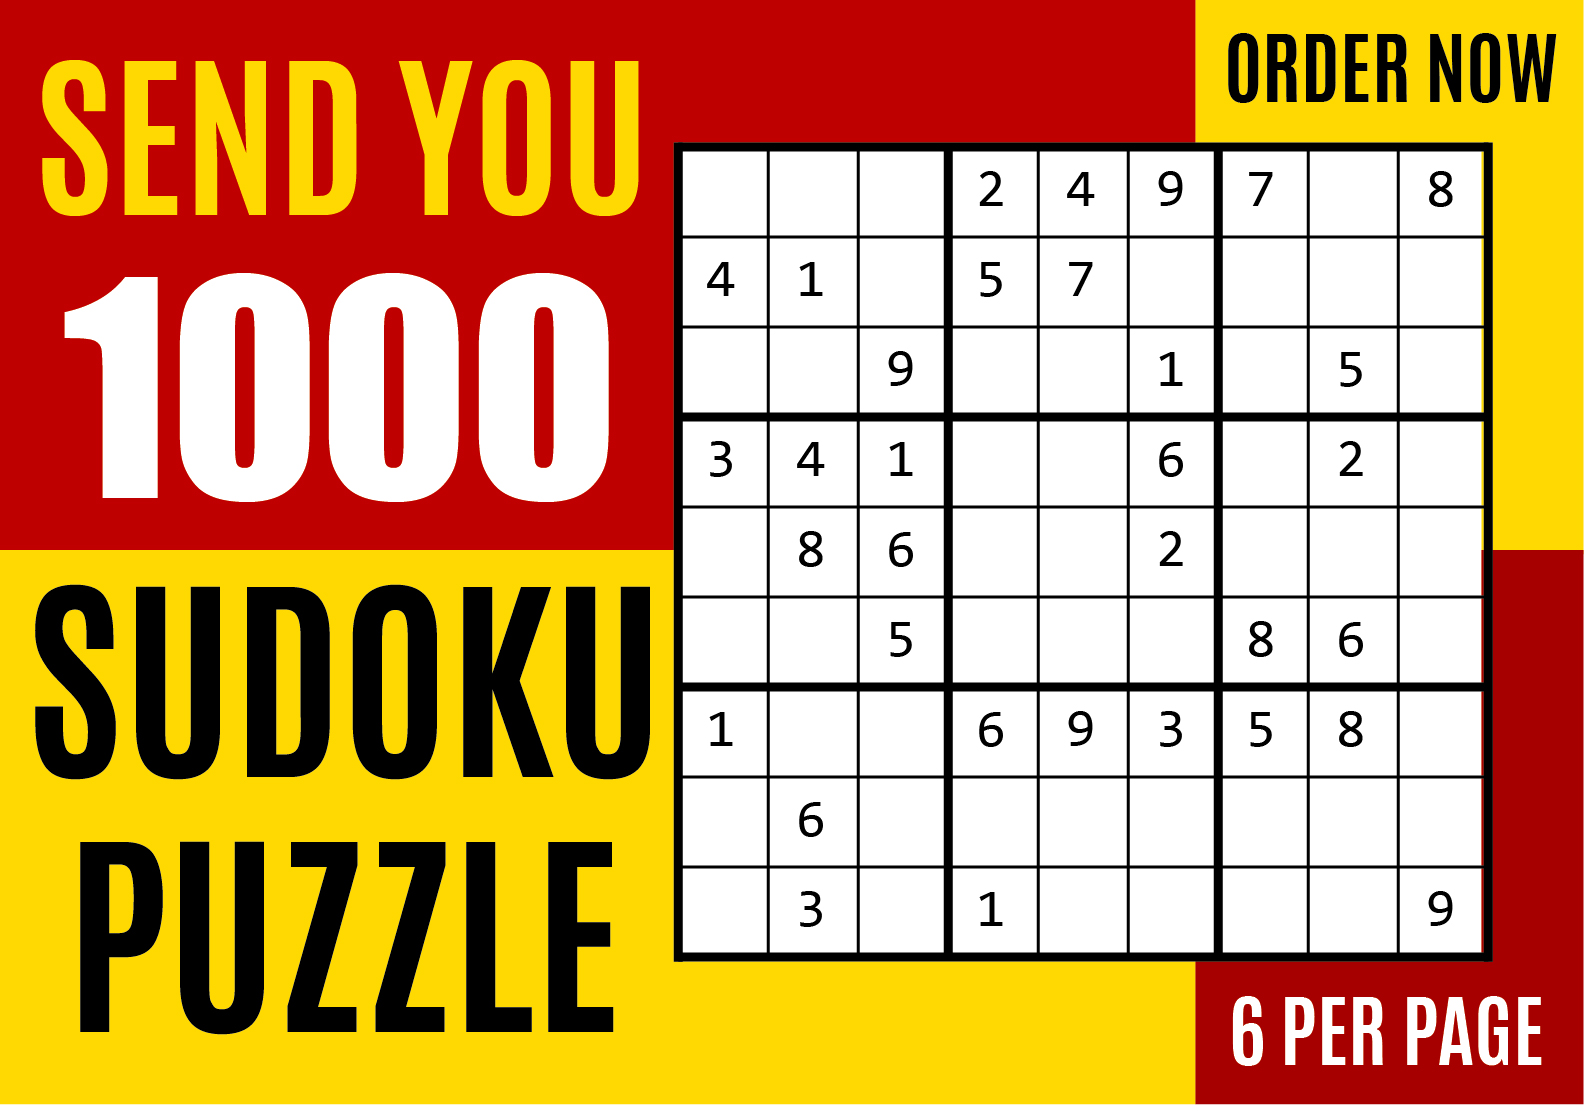 I will send you 1000 sudoku puzzles with solution